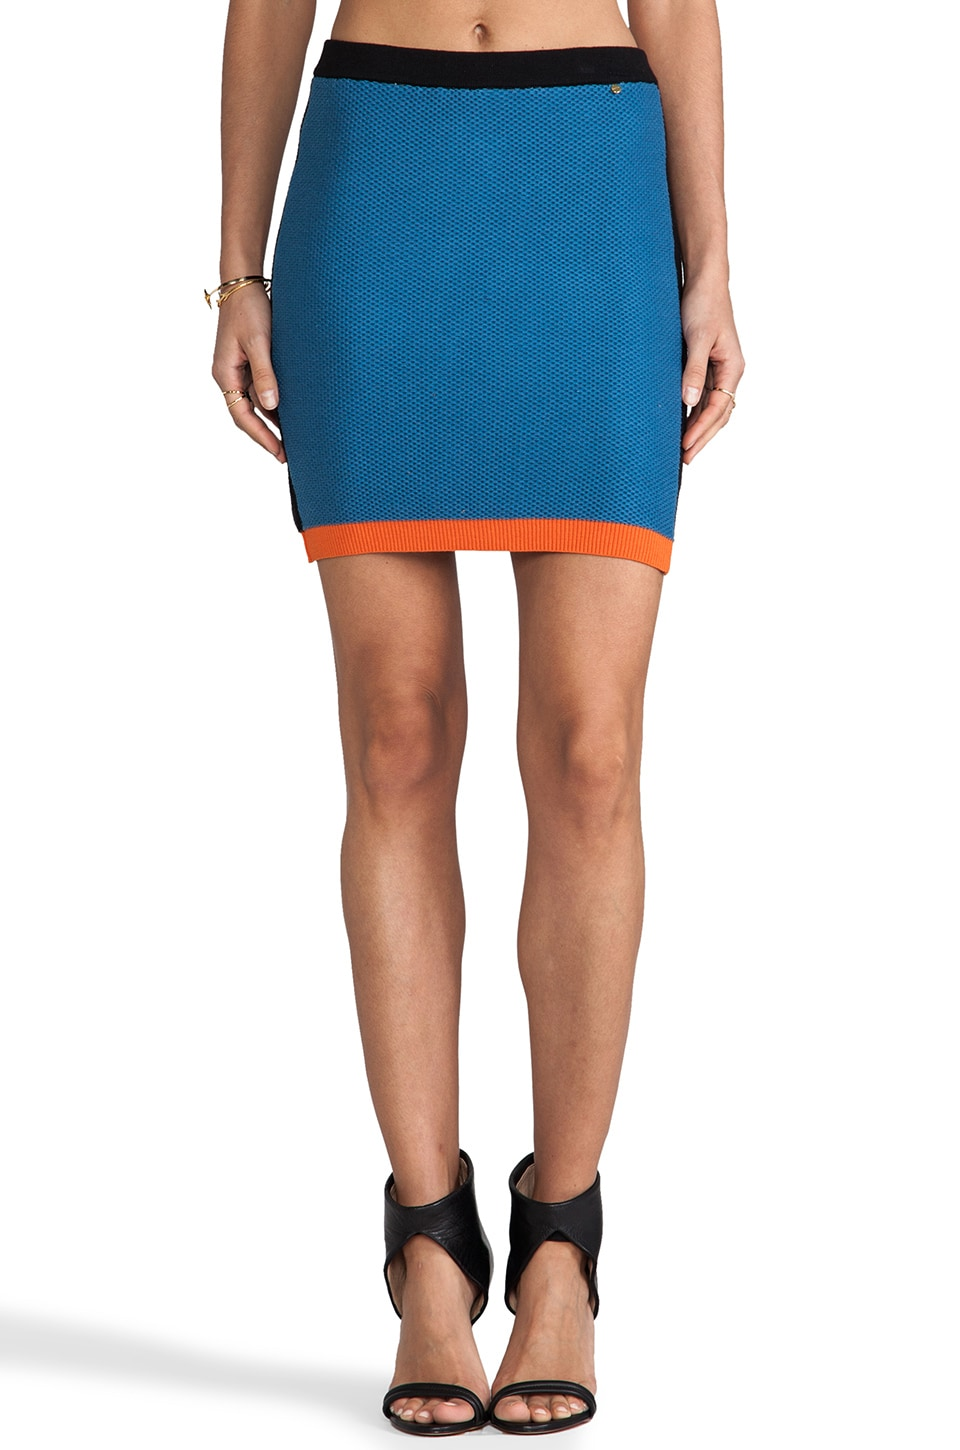 harlyn Blocked Knitted Skirt in Denim & Black & Tangerine